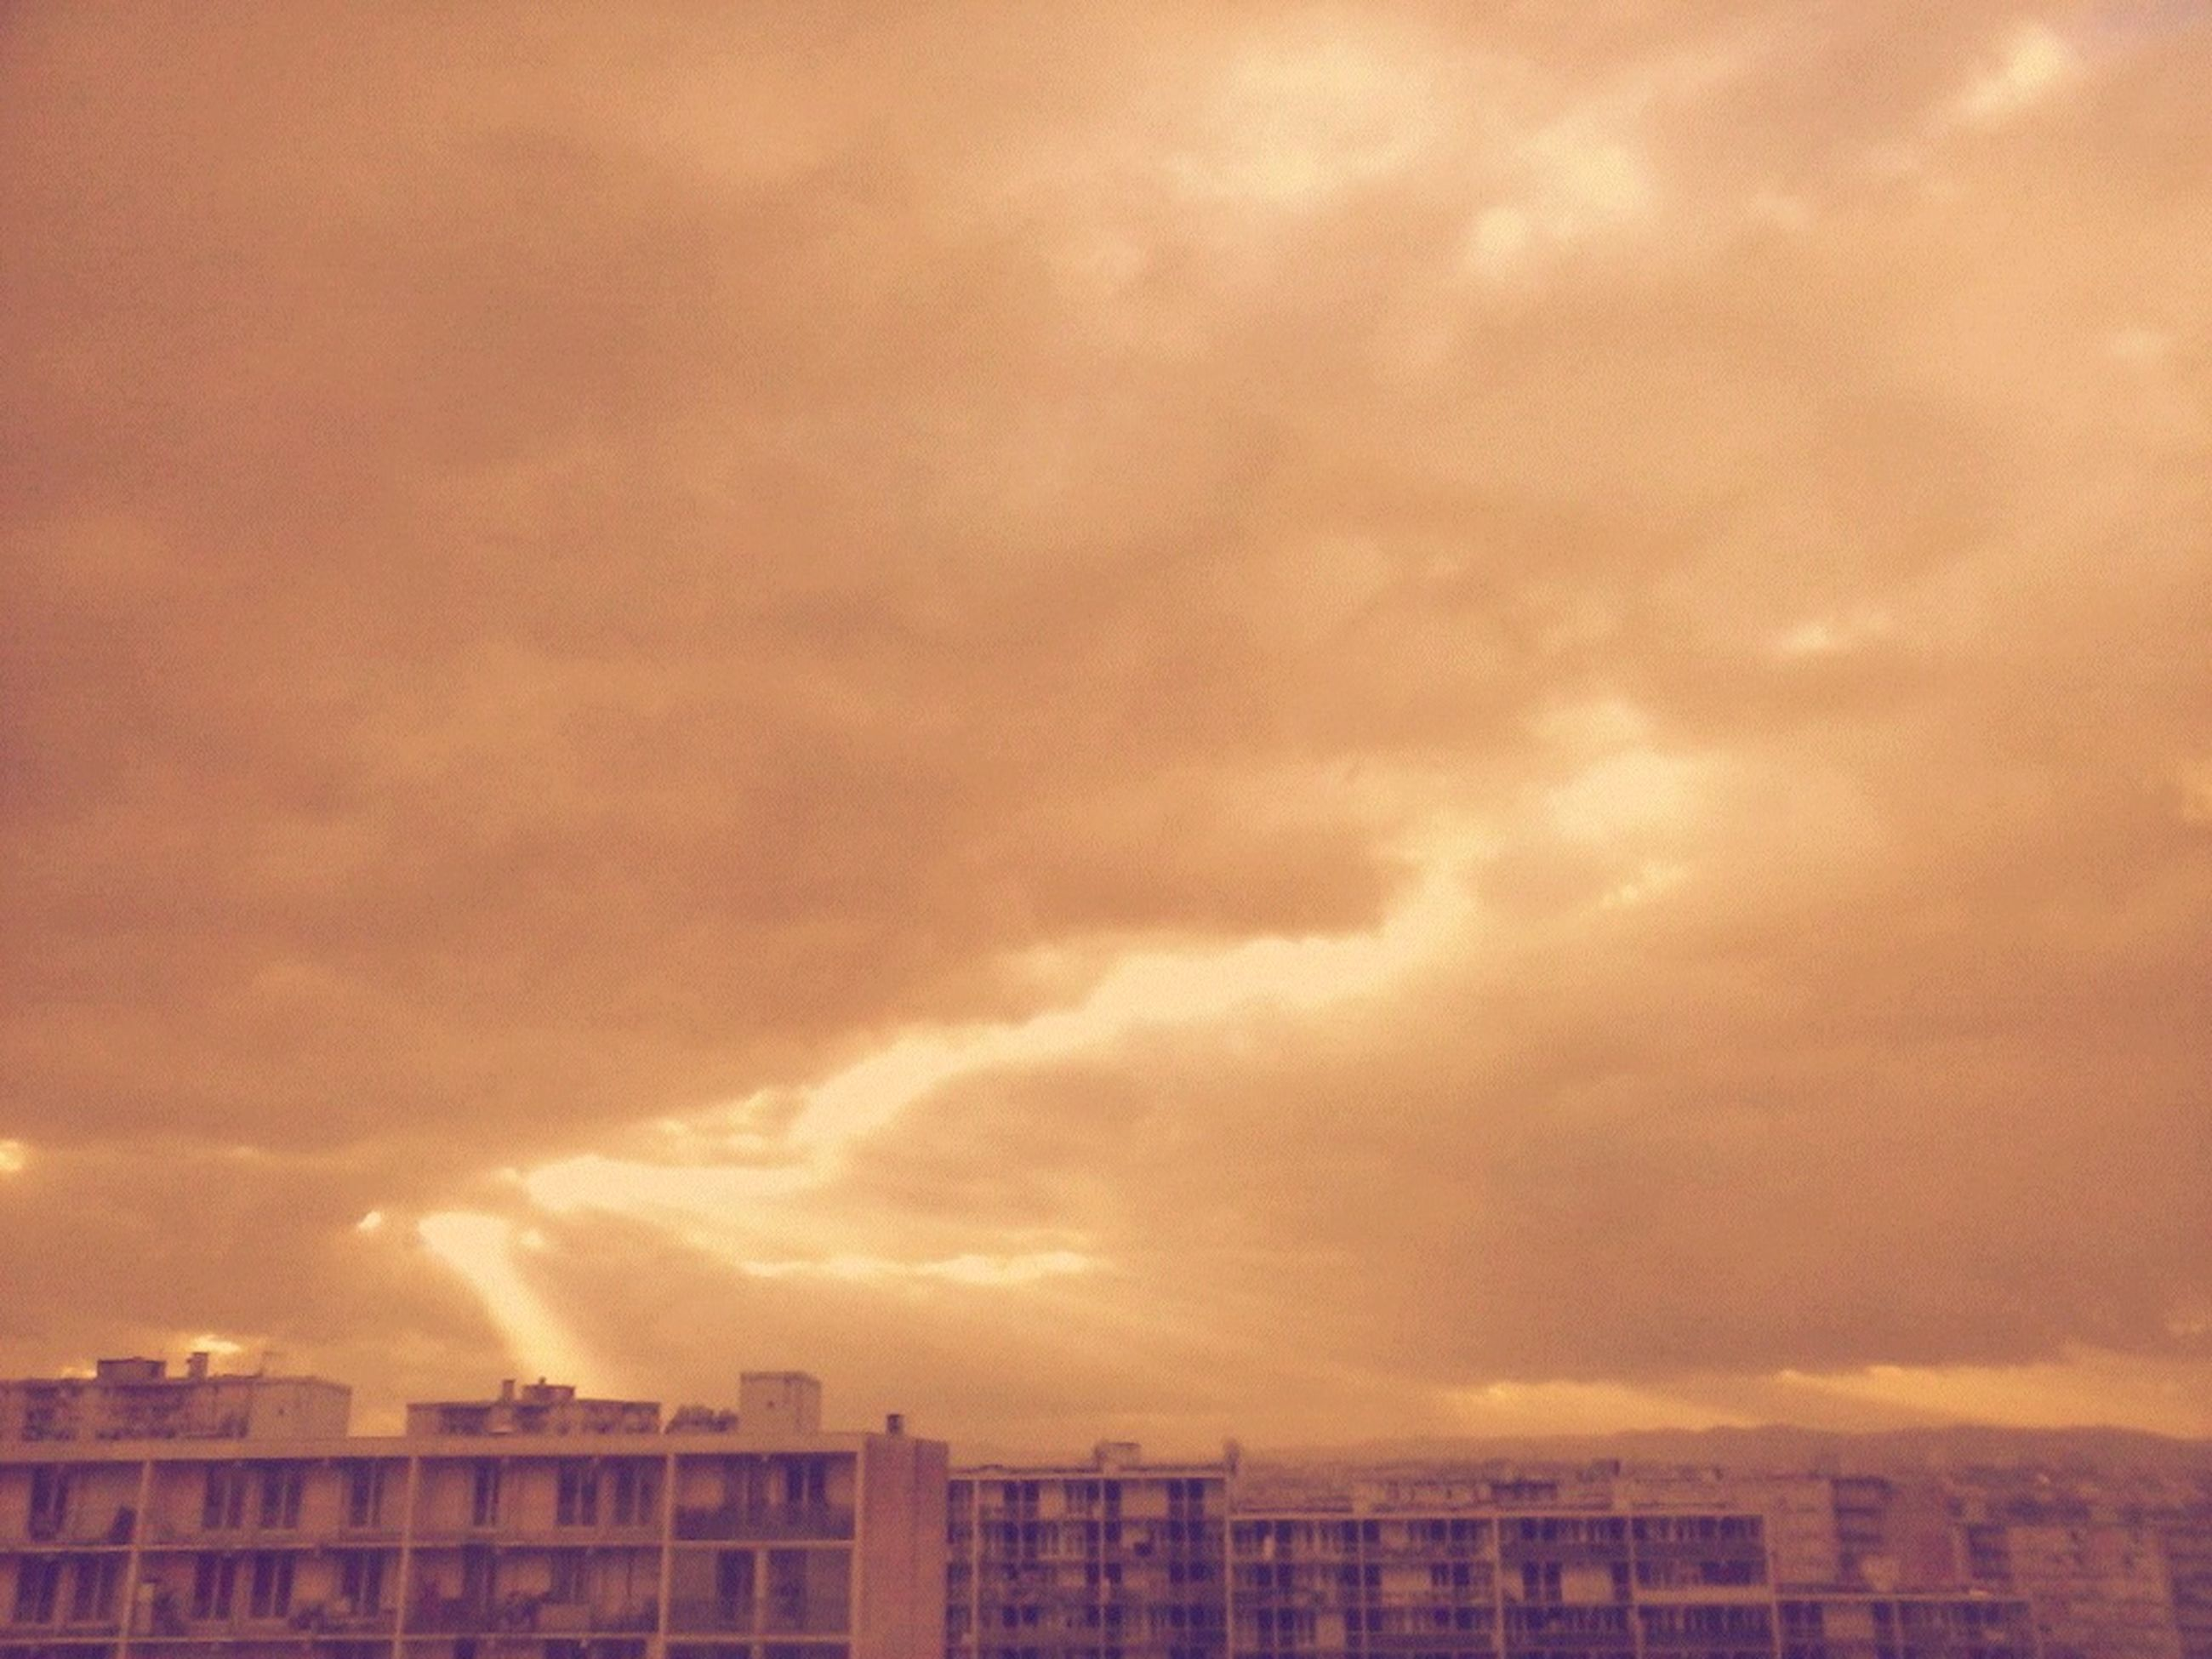 building exterior, architecture, built structure, cloud - sky, sky, sunset, cloudy, weather, city, overcast, low angle view, orange color, cloud, residential building, building, residential structure, dramatic sky, storm cloud, outdoors, nature